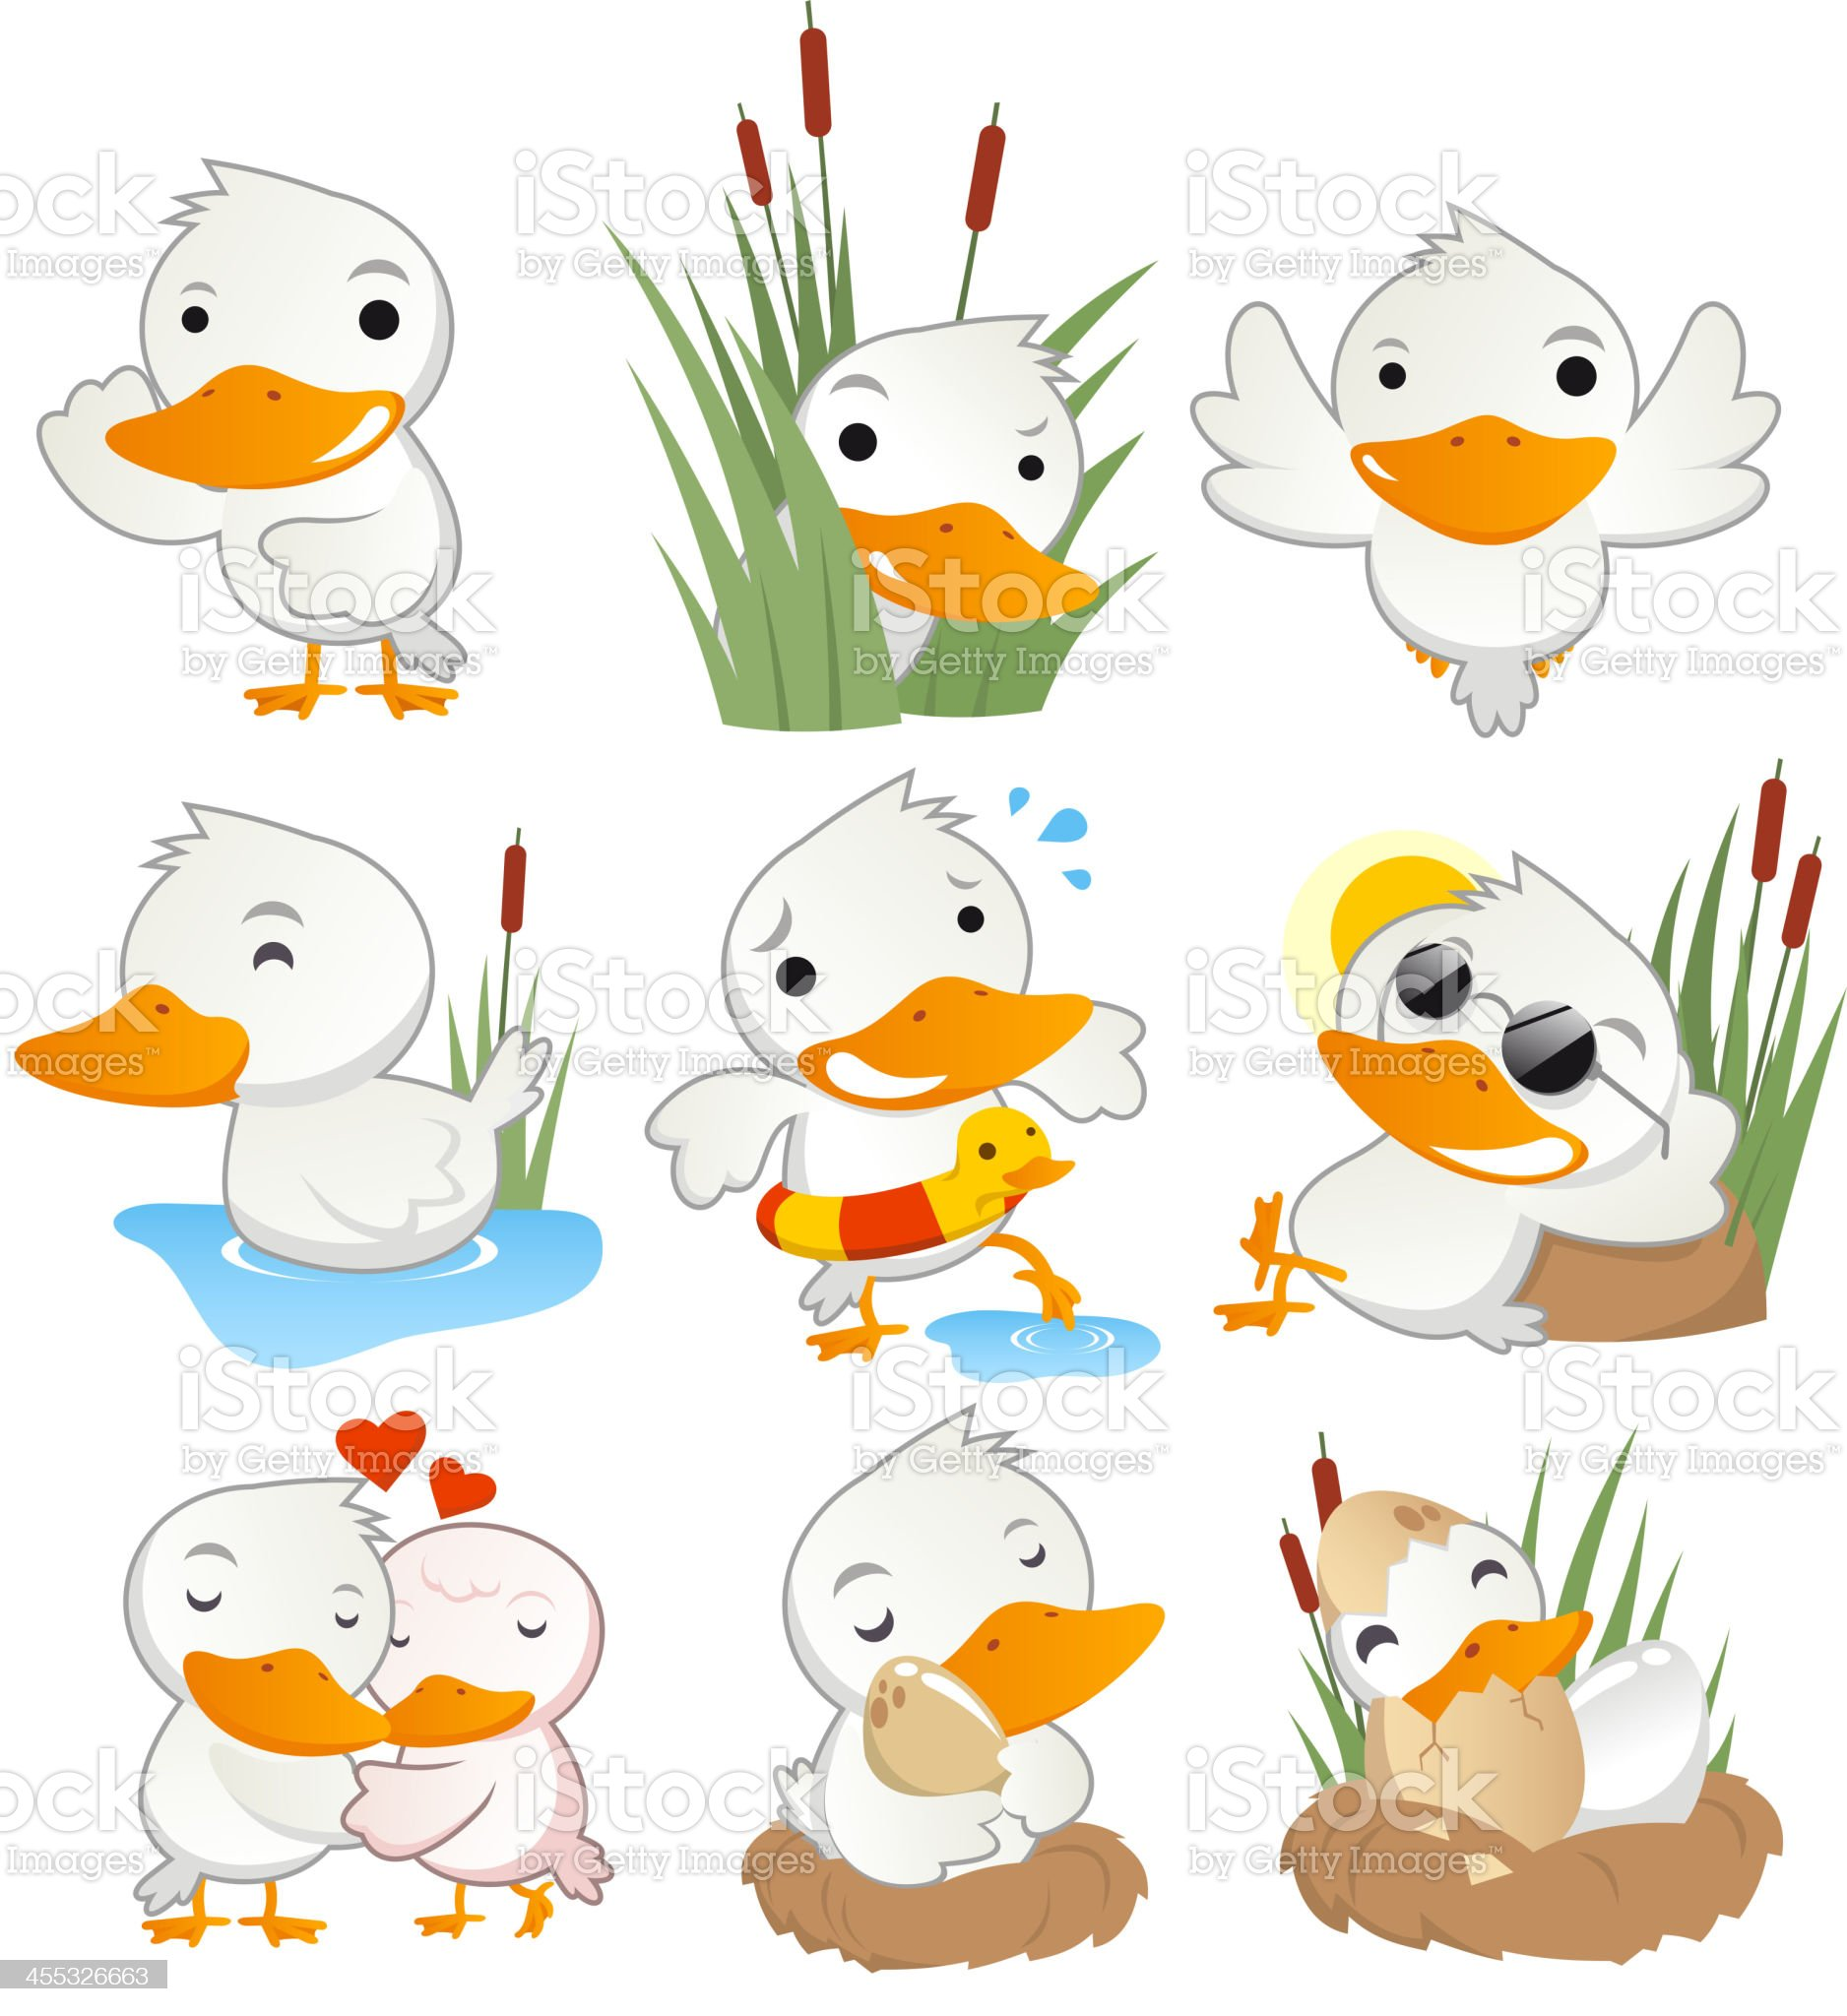 Cute duck in action set collection royalty-free stock vector art